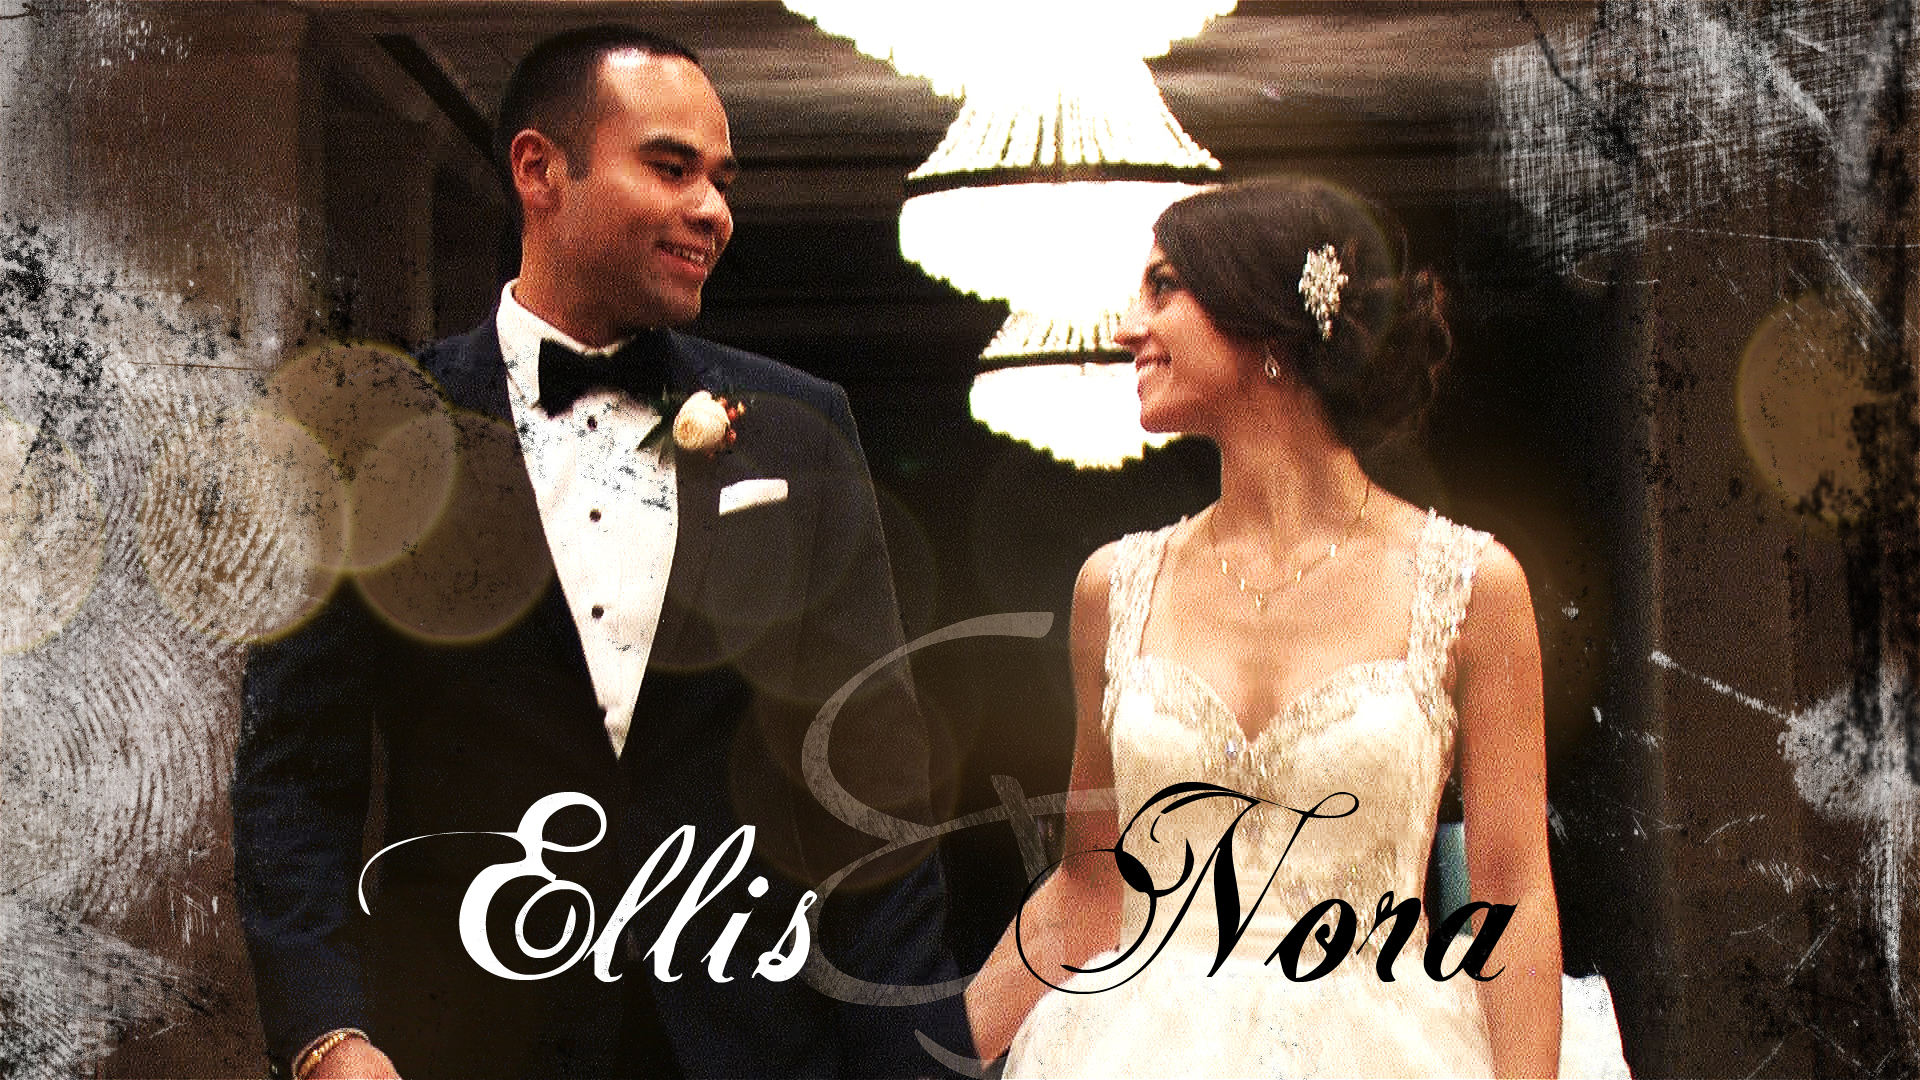 Ellis & Nora – Buffalo Wedding Video